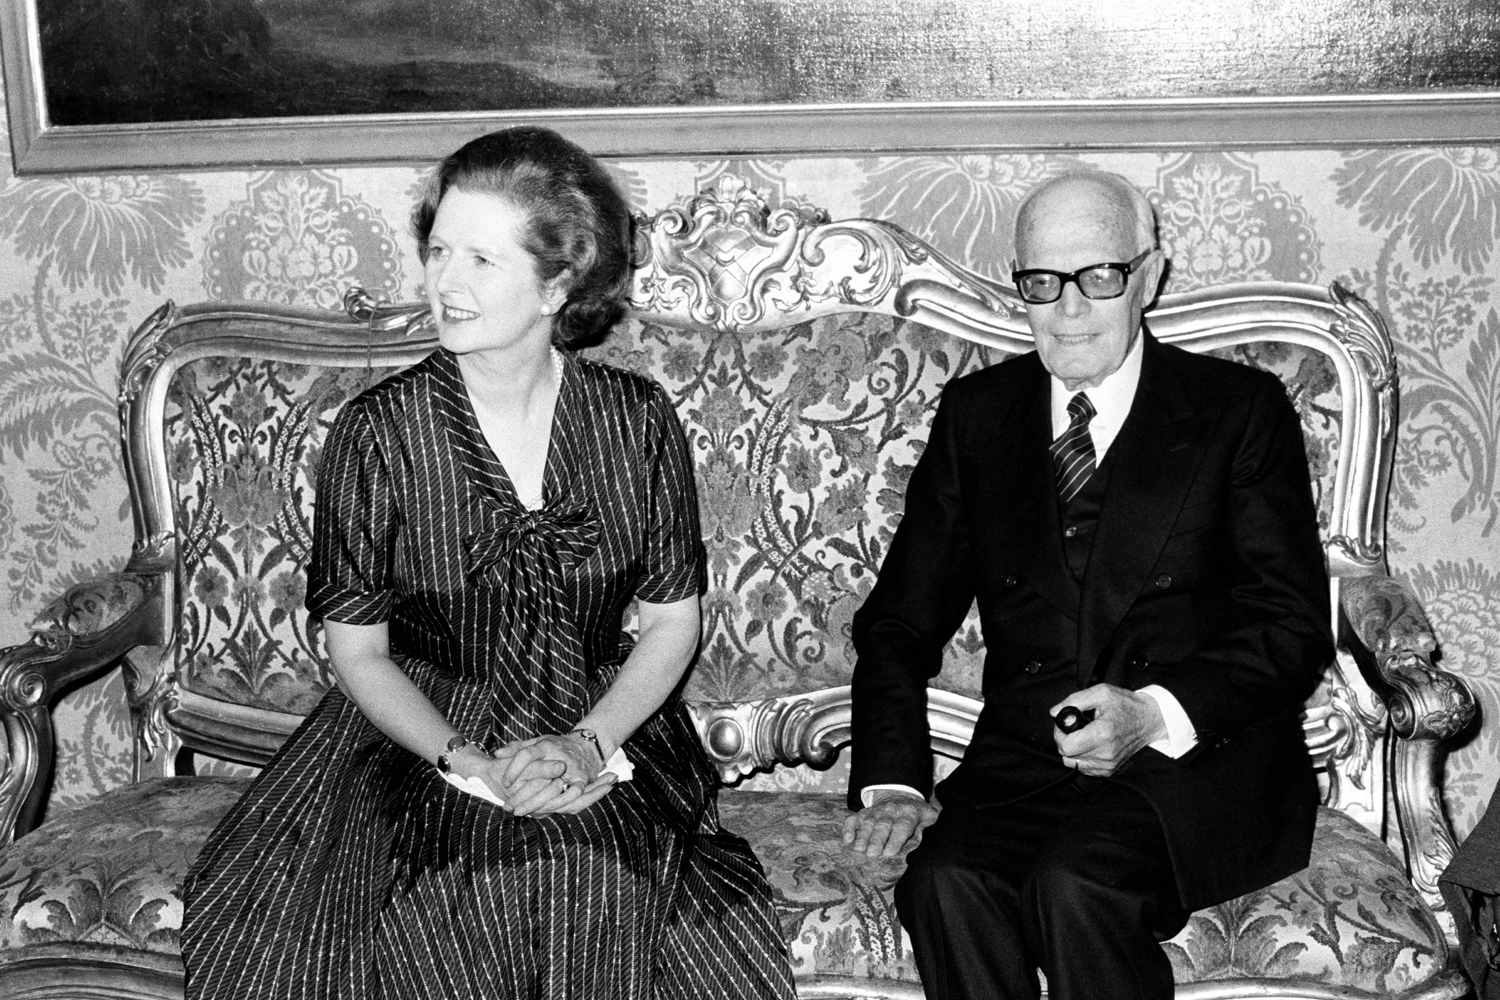 Former British Prime Minister Lady Margaret Thatcher meets Sandro Pertini, Socialist President of the Italian Republic, at the Quirinal Palace in Rome in 1979.